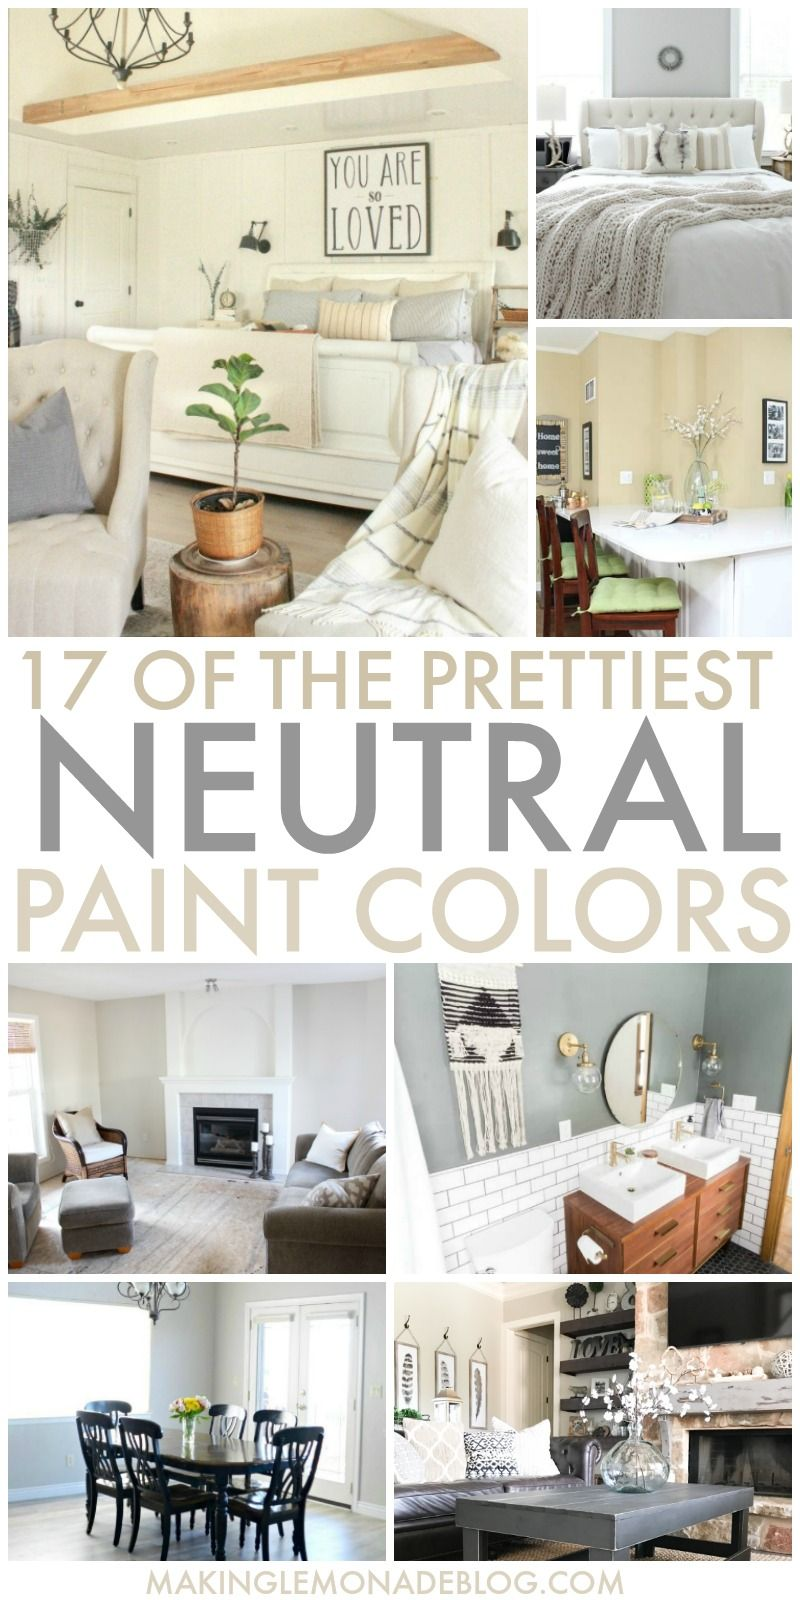 Best 17 Of The Prettiest Neutral Paint Colors Living Room 400 x 300